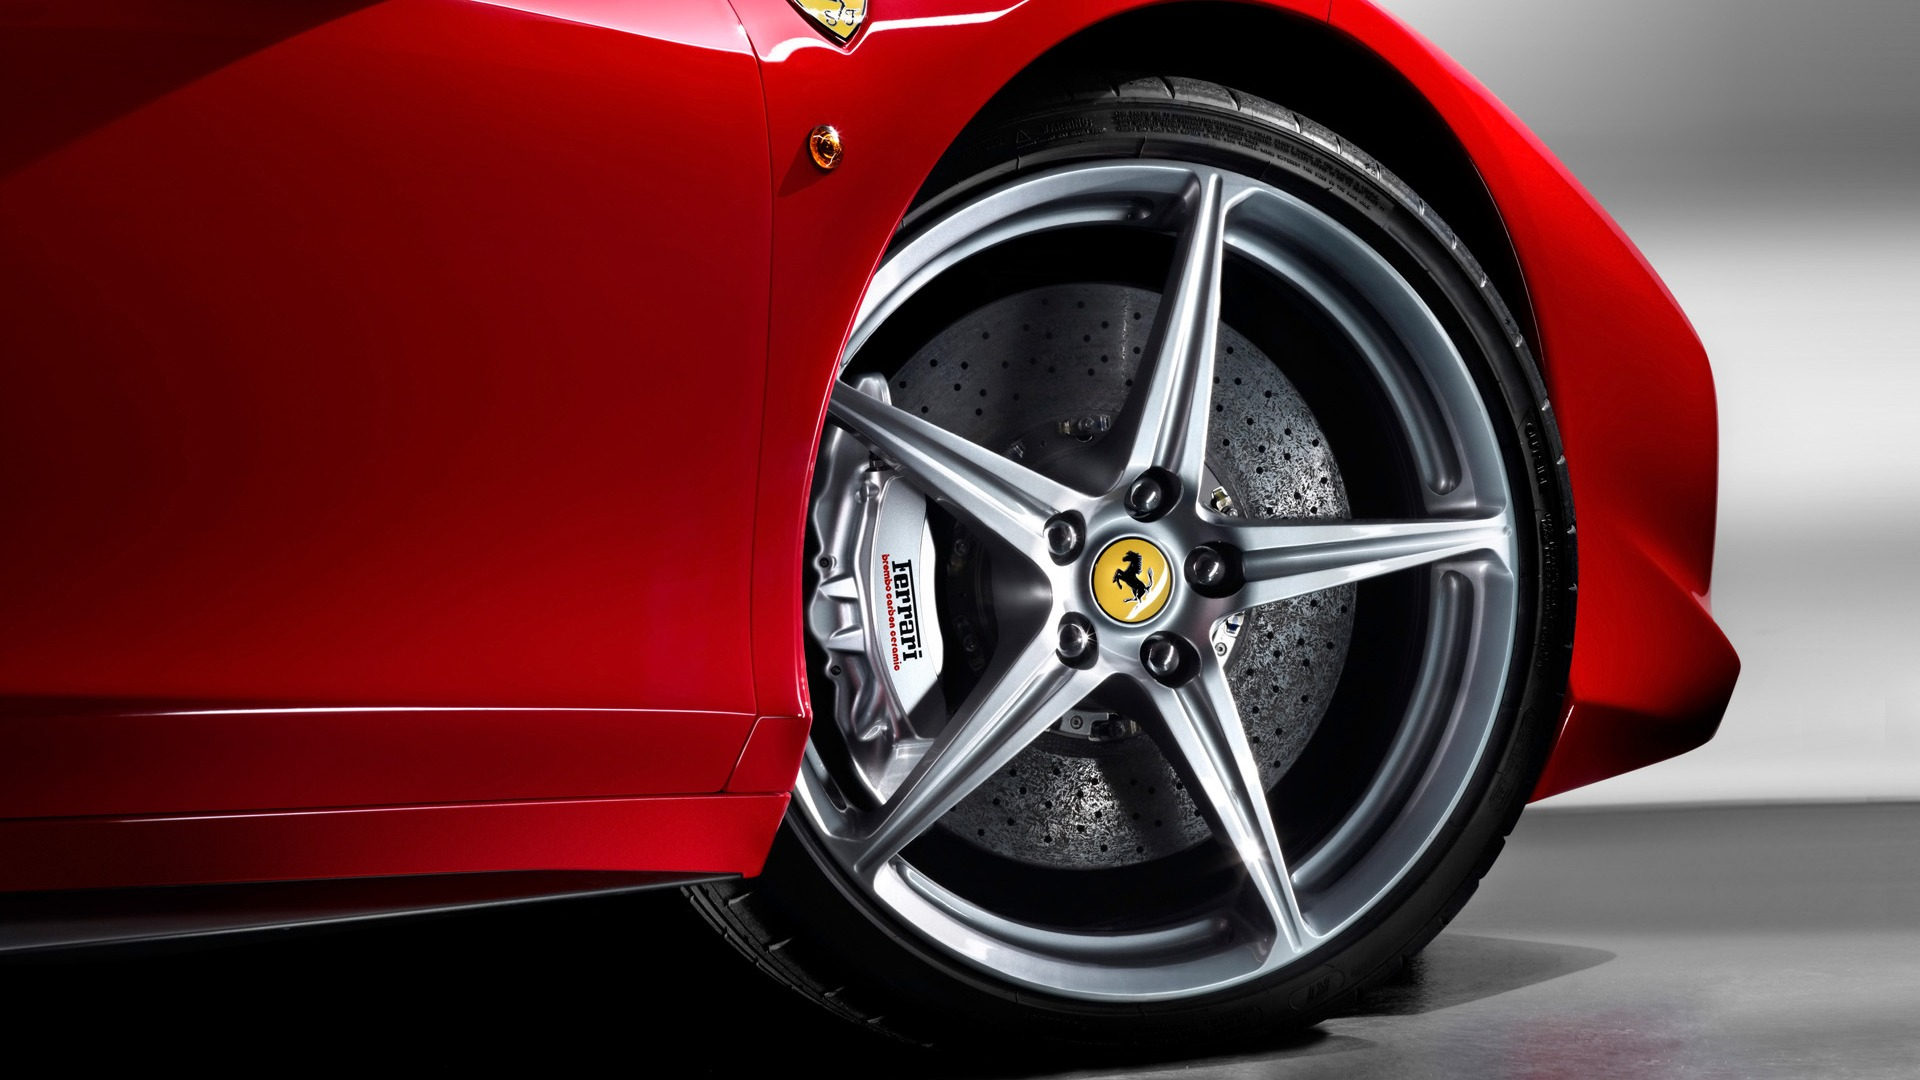 Free download ferrari rims wallpaper | 1920 x 1080 ferrari rims